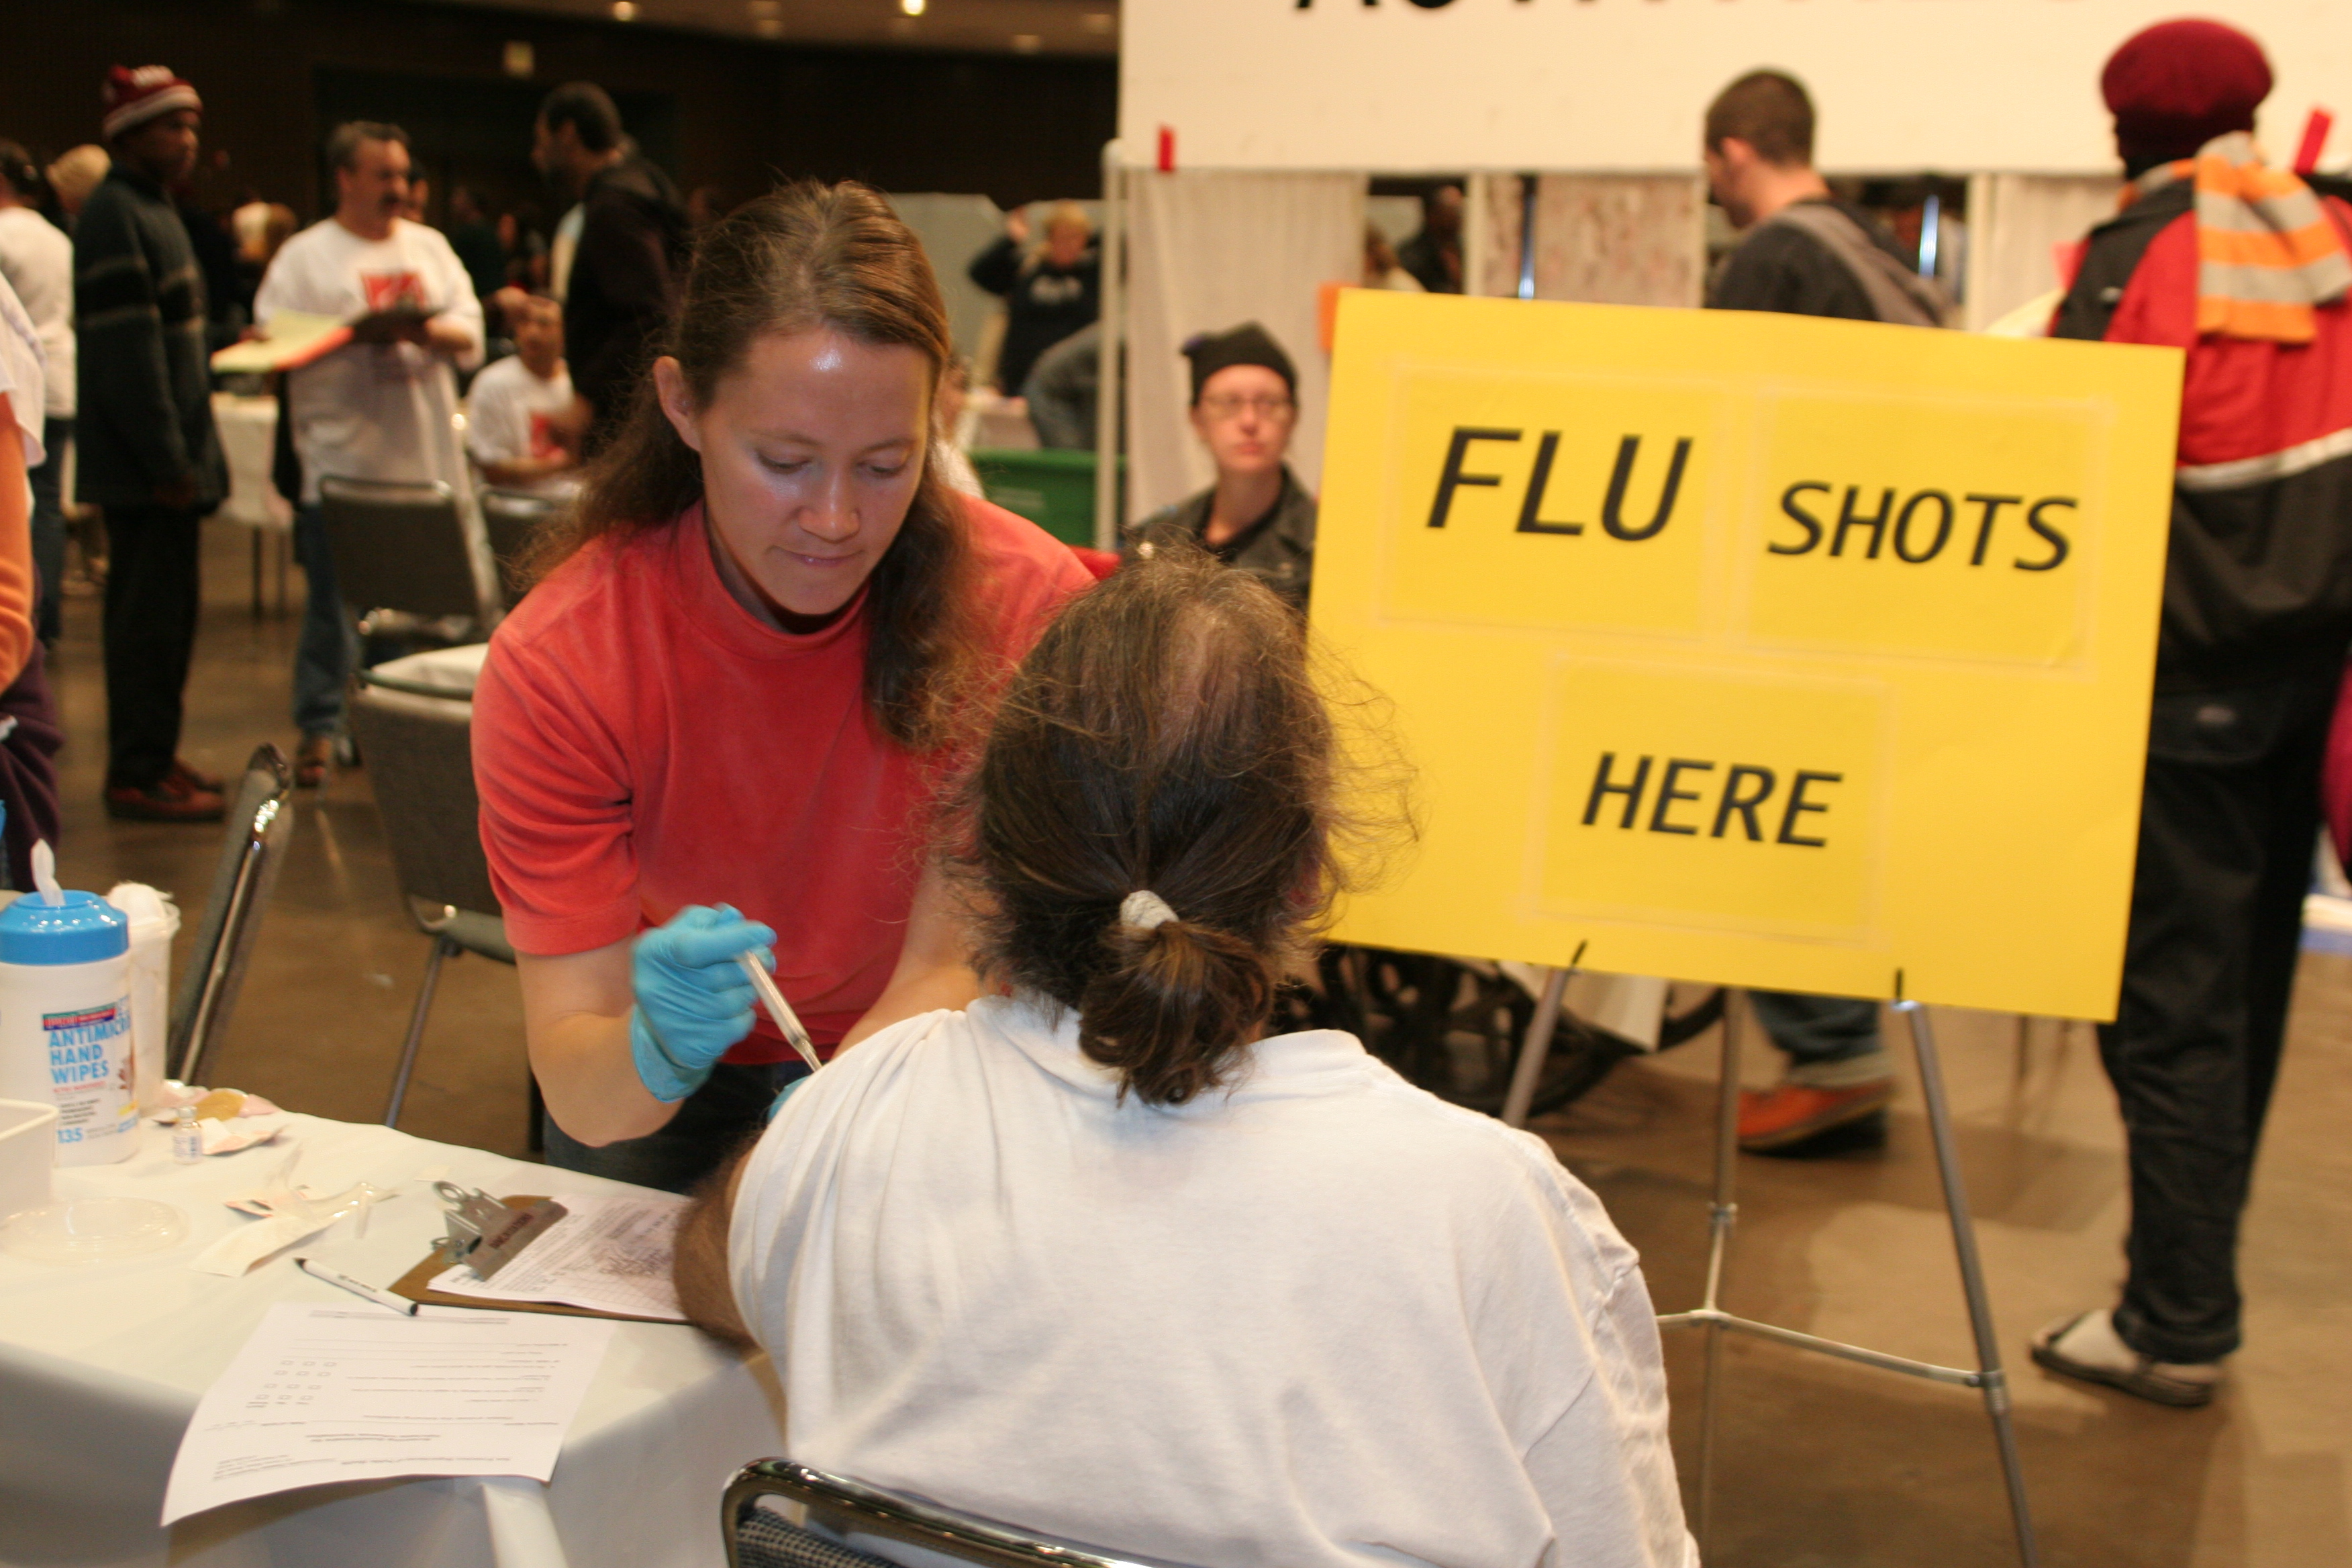 Event participant receiving a Flu shot